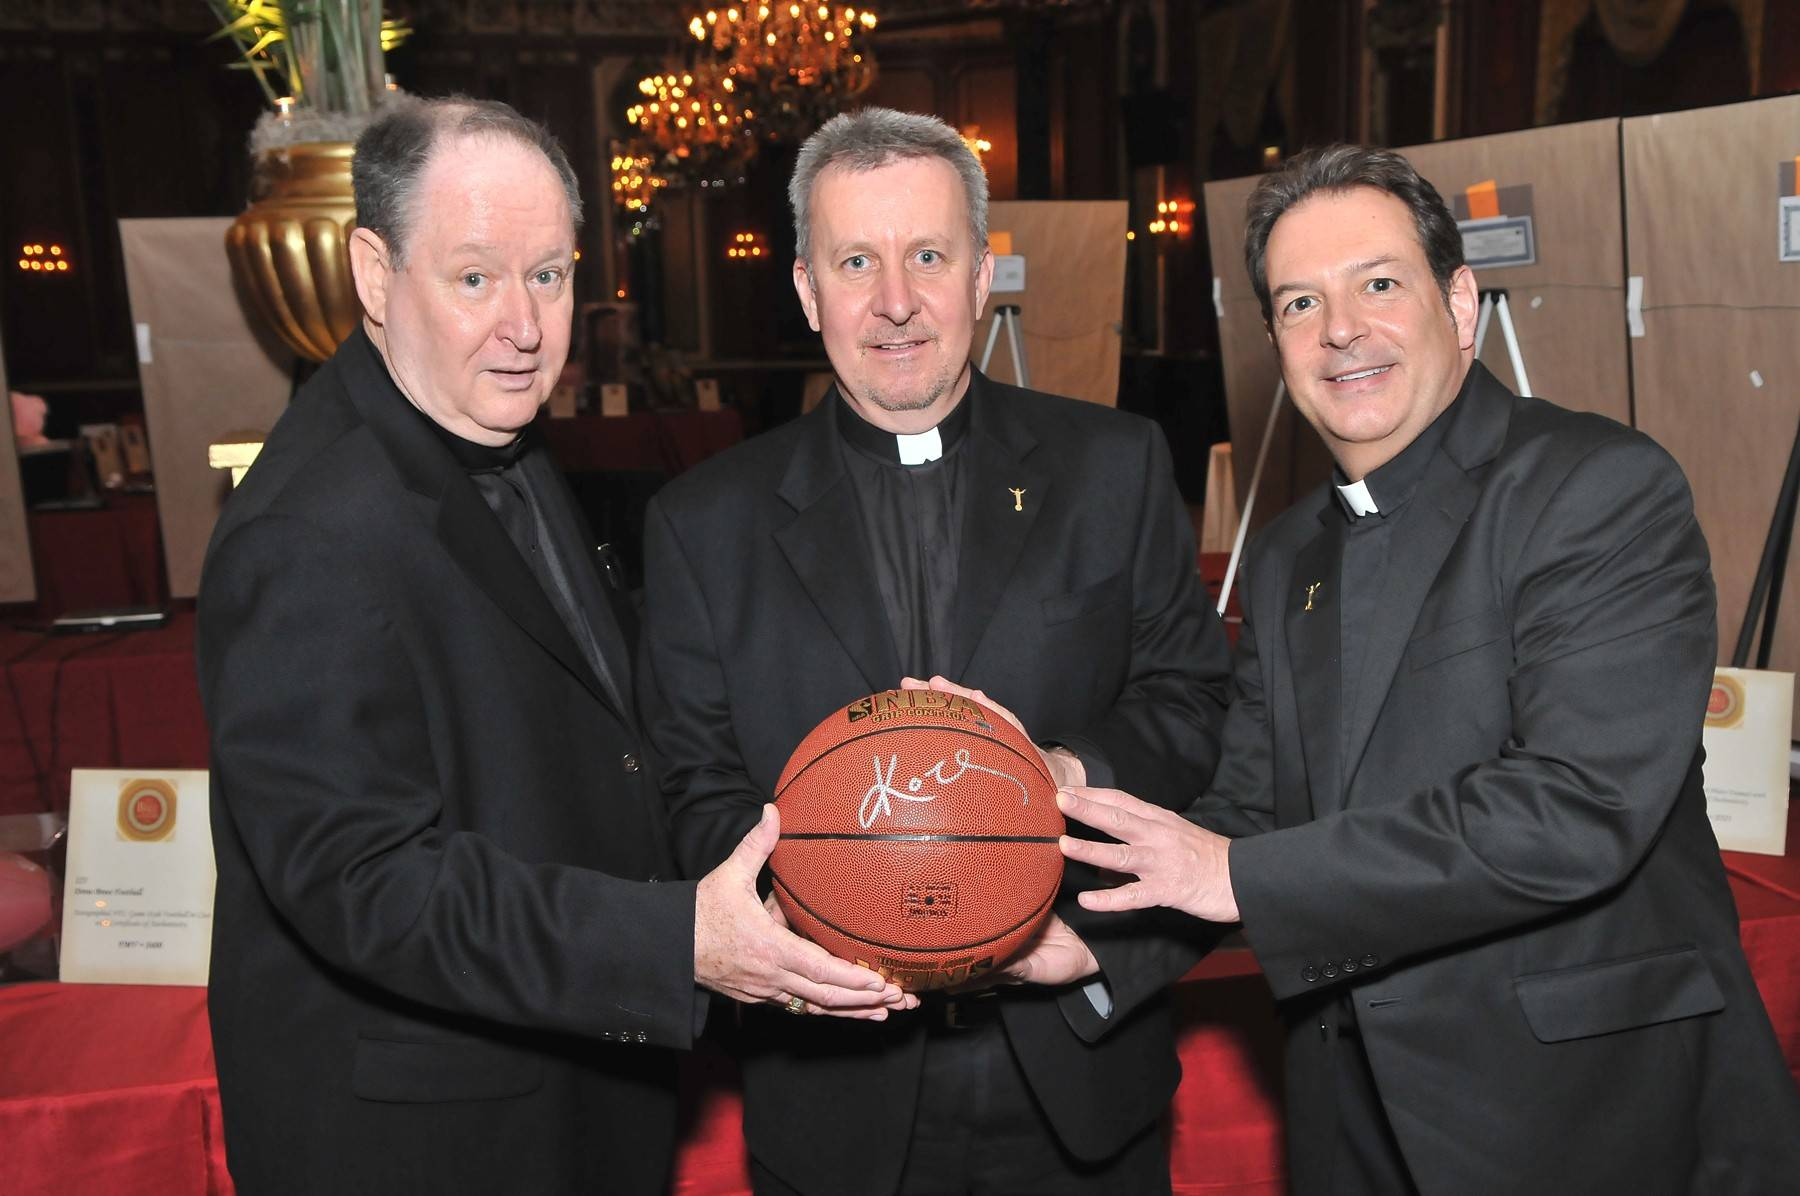 This Kobe Bryant-autographed basketball was a prize auction item at the 2013 ball. Holding it are Daniel McCormick, C.F.A., Provincial Immaculate Conception Province, Brother Paul Magner and Brother Tom Klein C.F.A.